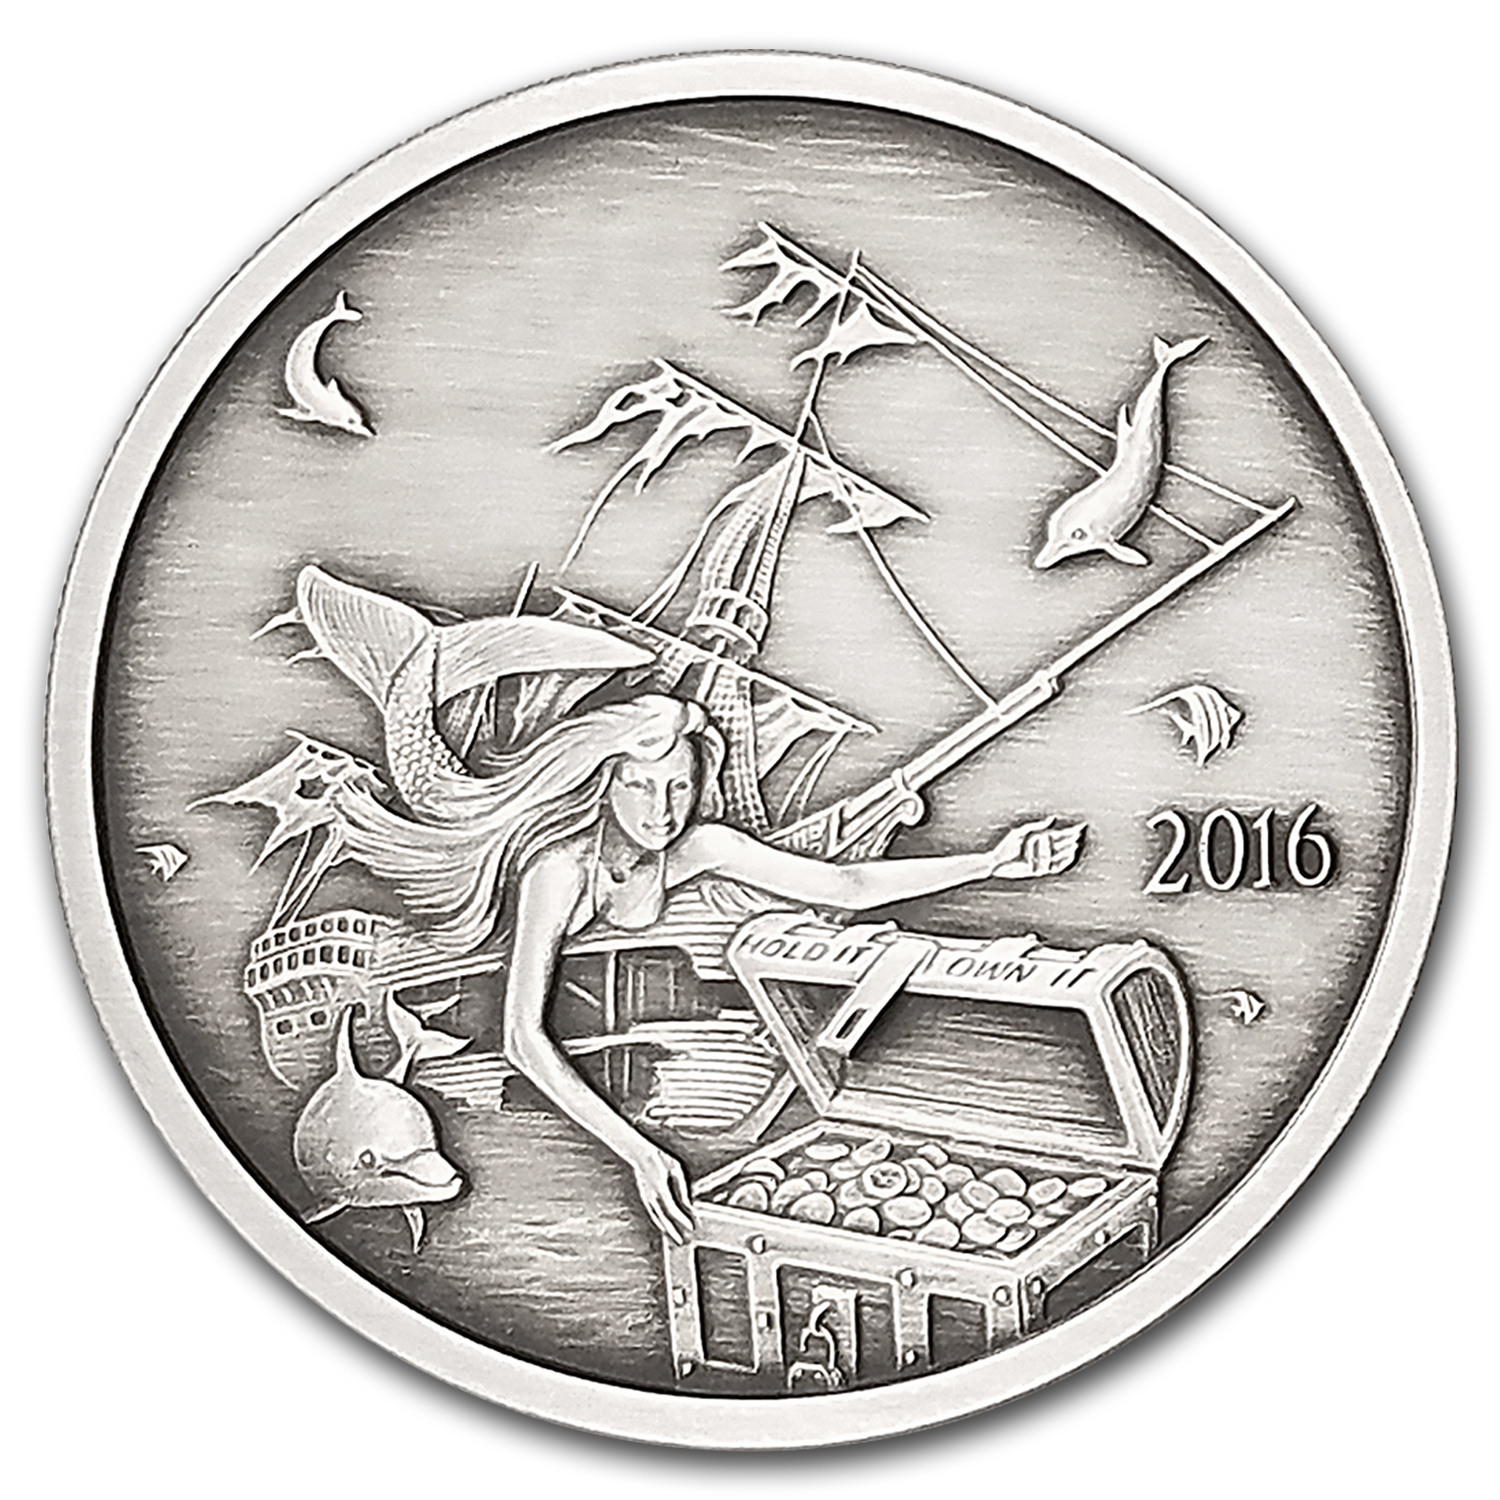 1 oz Silver Round - 2016 Silverbug Island Mermaid (Antique)